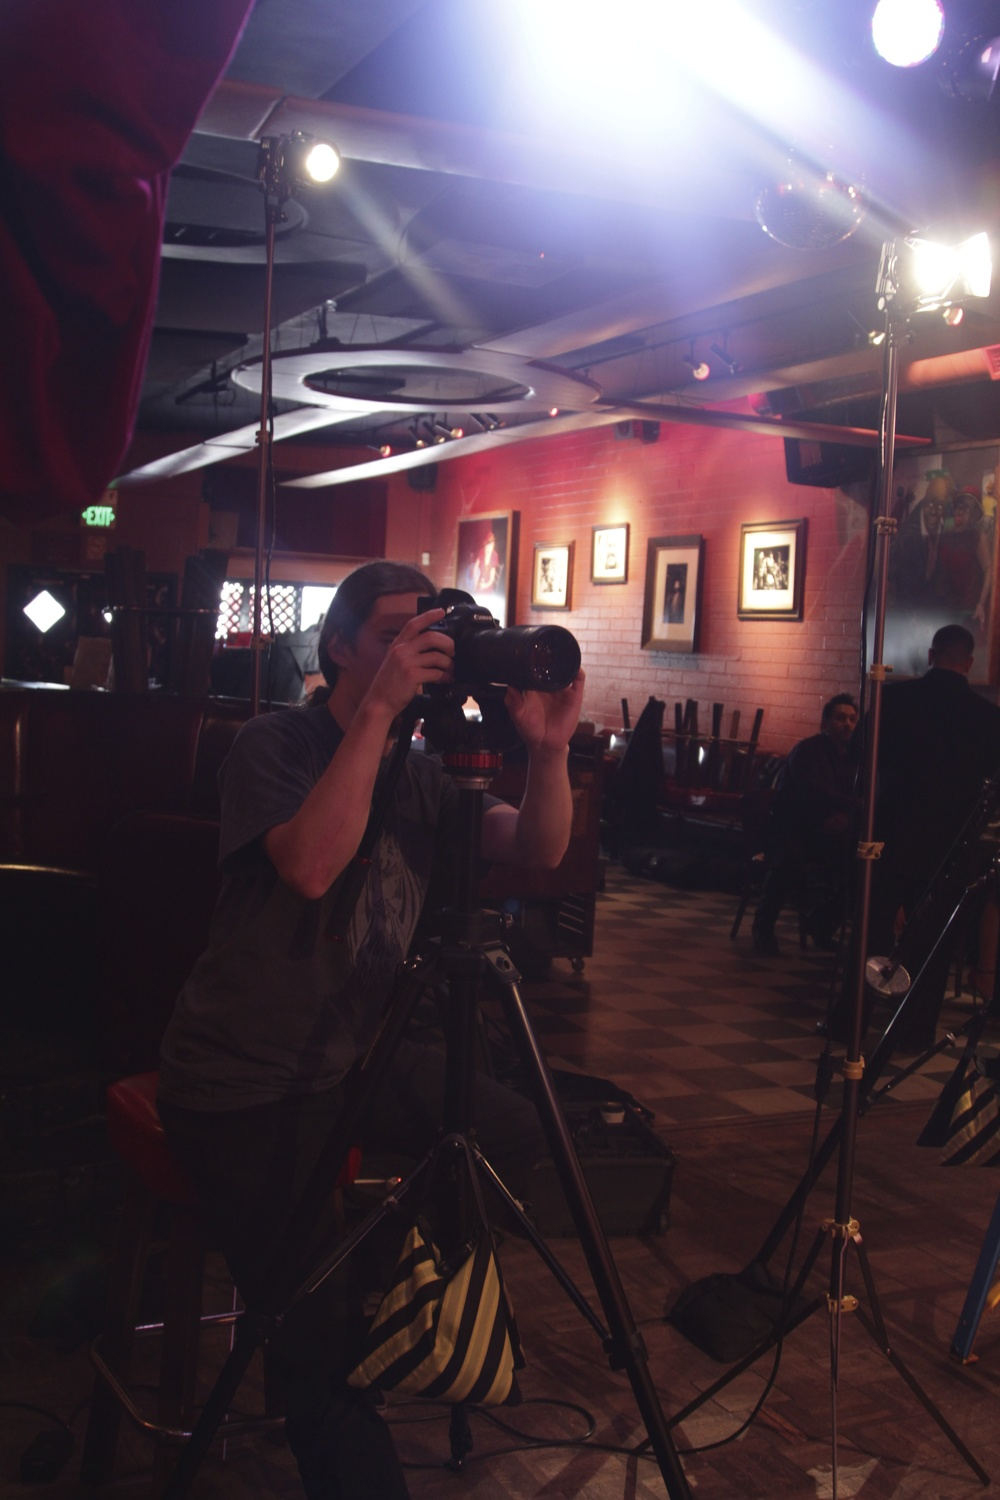 Patrick Brede at the Angela Brito video shoot